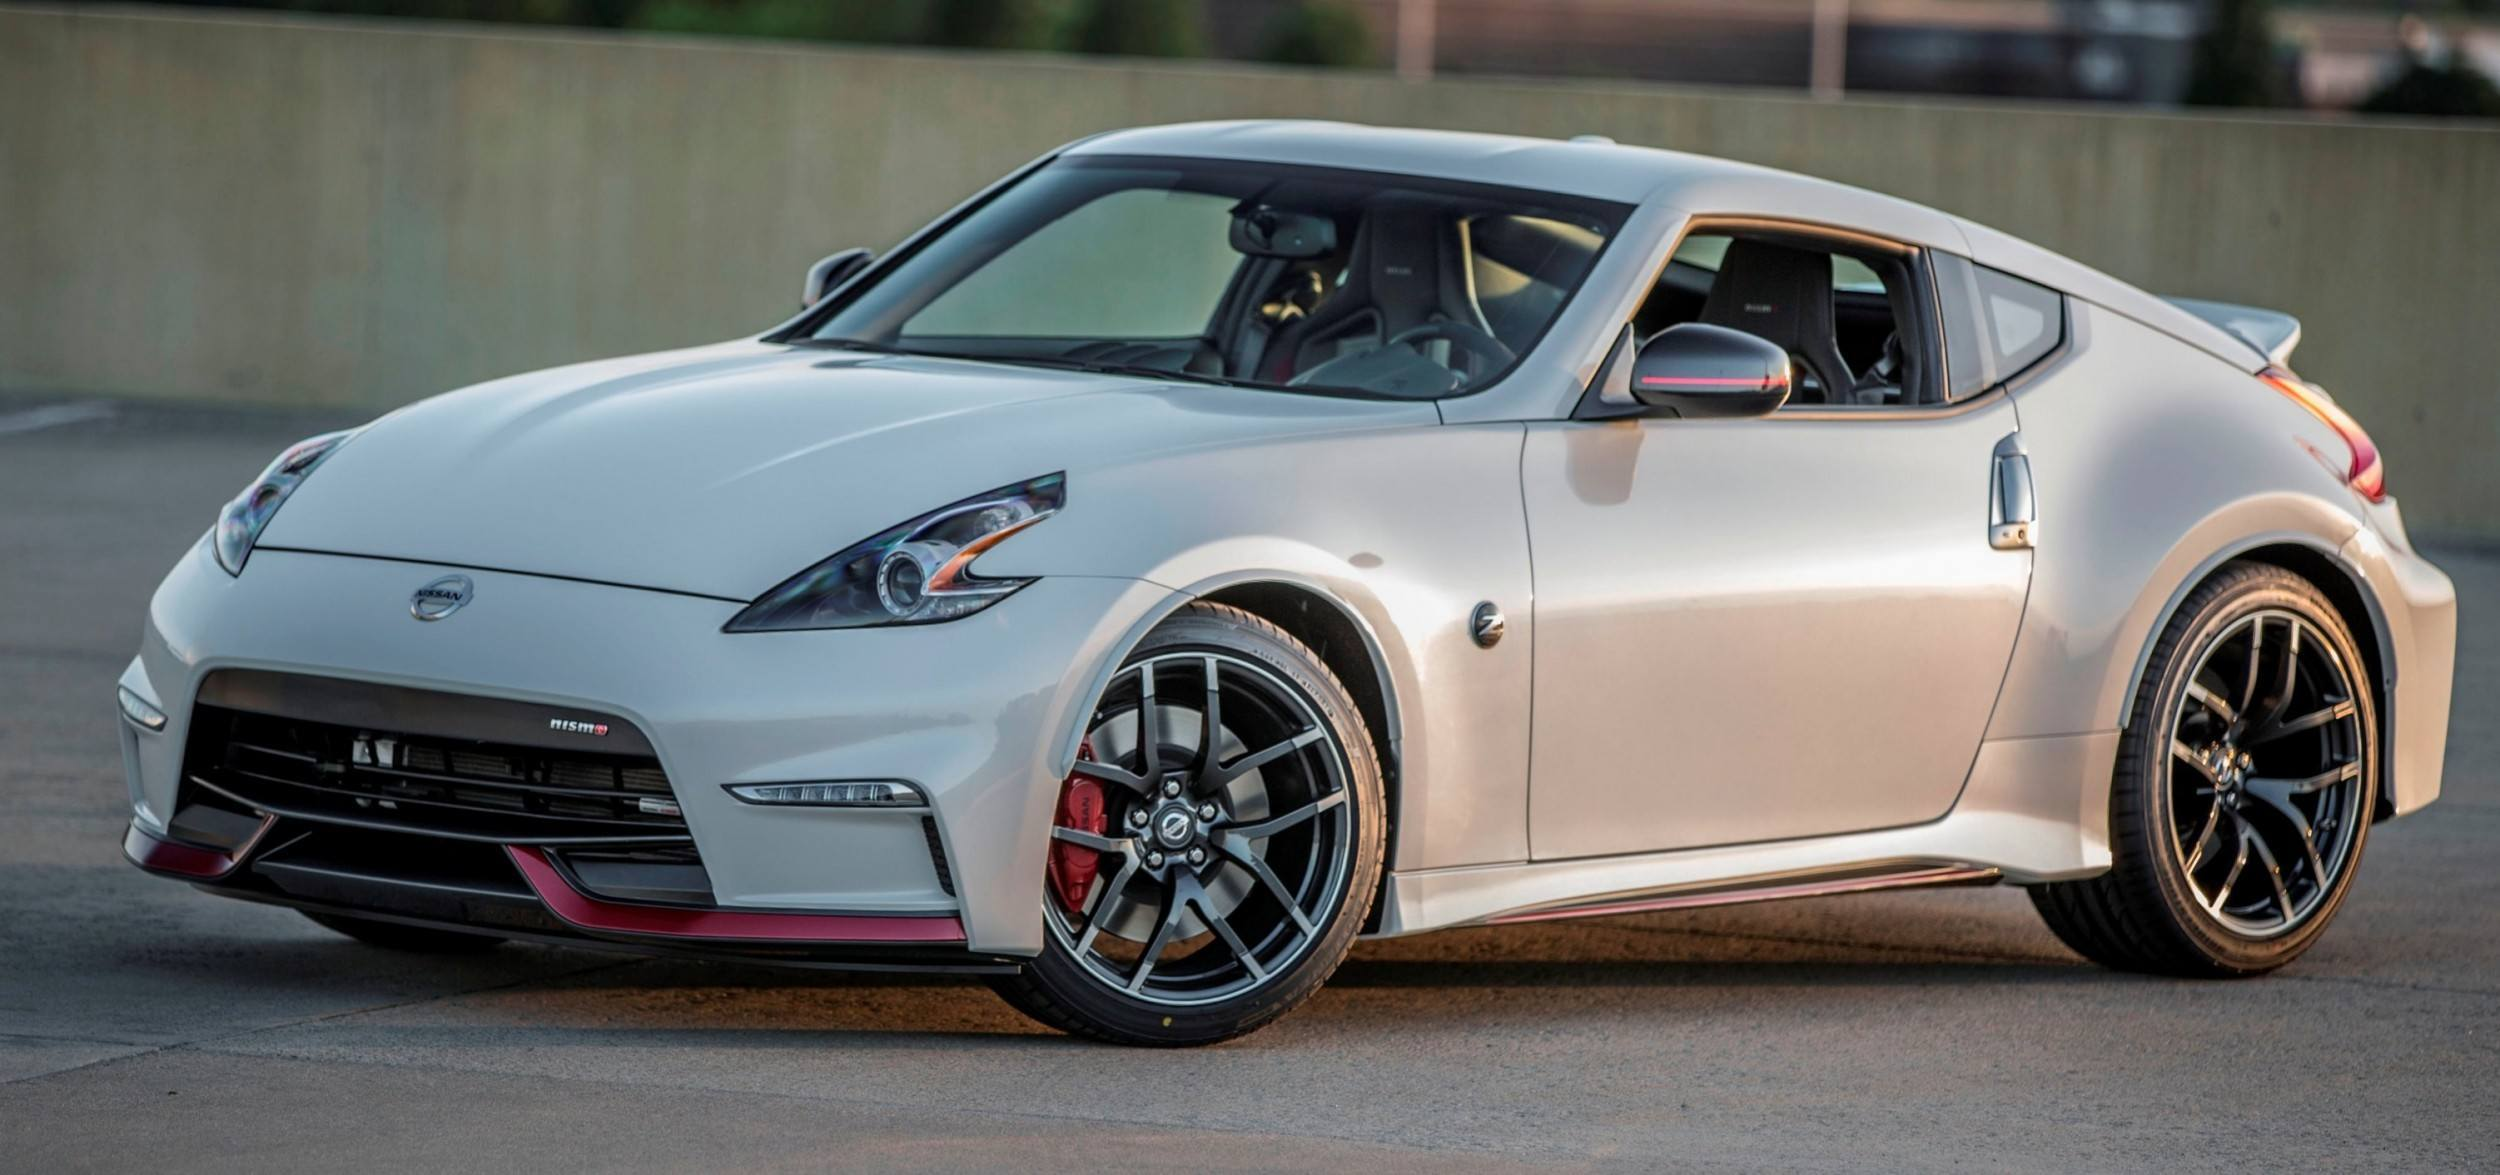 370Z Nismo 0 60 >> Update1 New Photos! 2015 Nissan 370Z NISMO Facelift Arrives In July